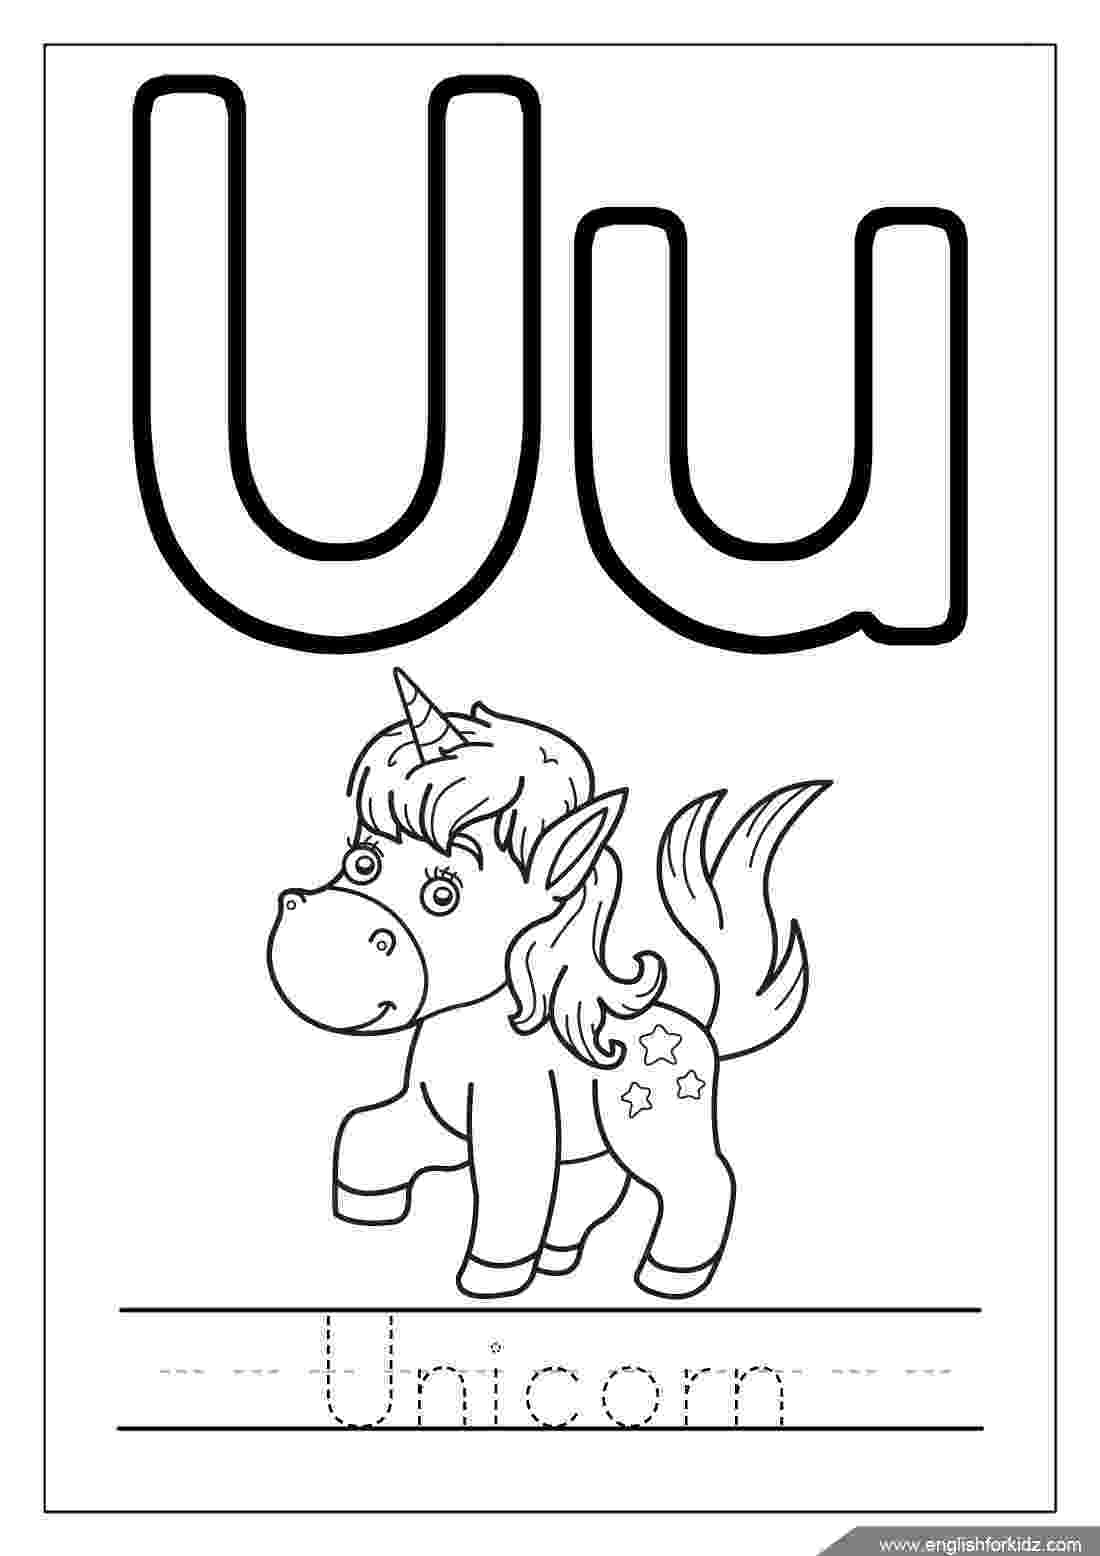 english alphabet coloring pages english for kids step by step alphabet english coloring pages